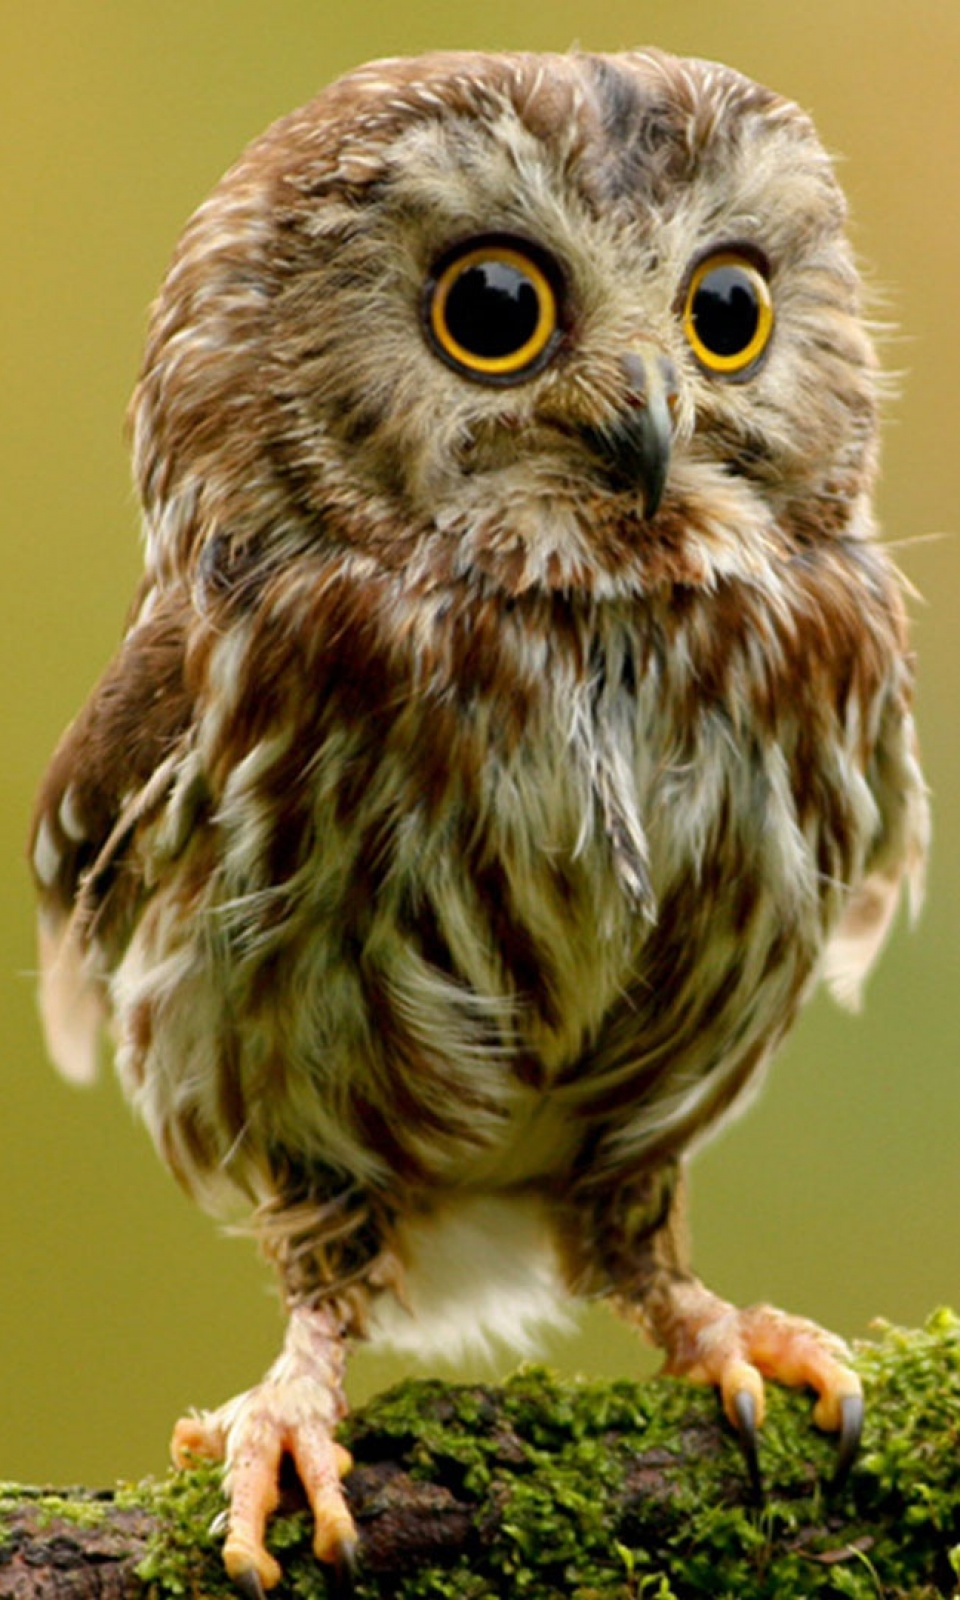 Cute owl mobile wallpaper mobiles wall voltagebd Choice Image